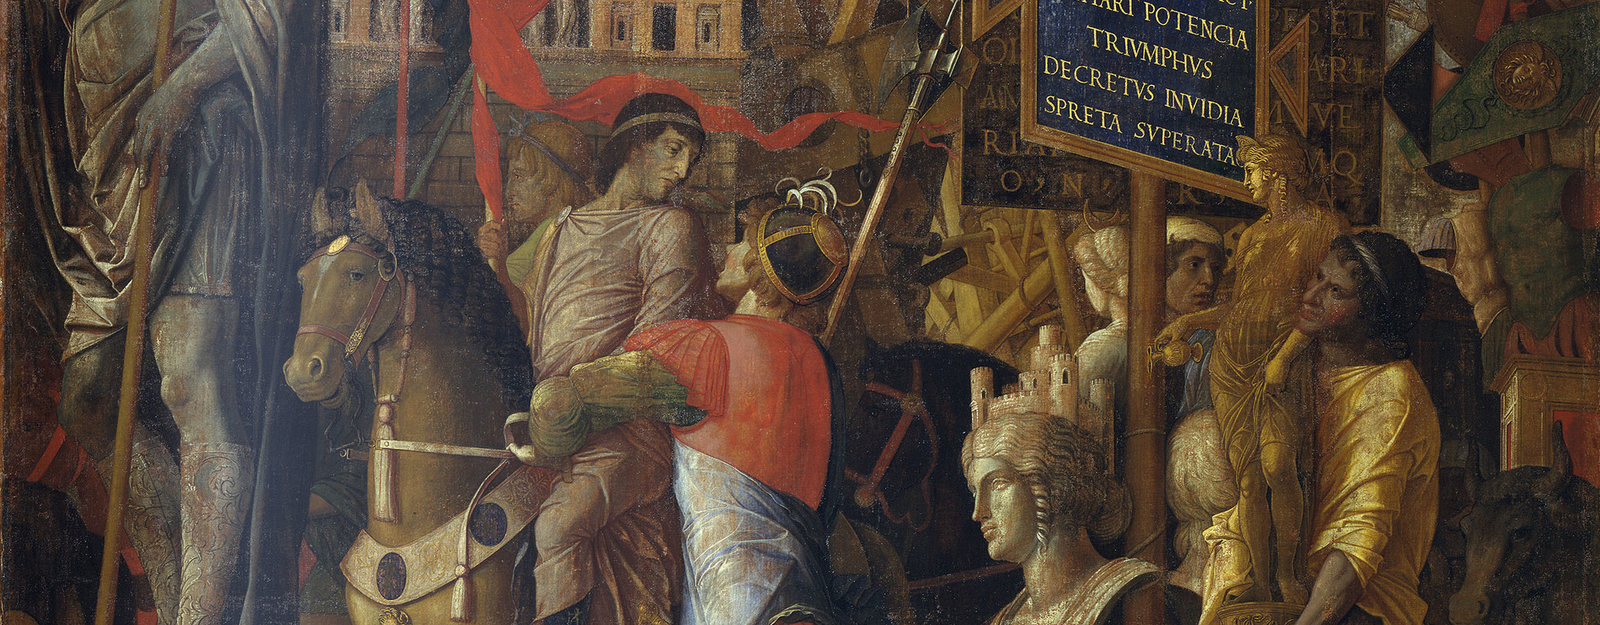 This painting is one of nine canvases known as The Triumphs of Caesar, which can be counted amongst the finest achievements in Italian Renaissance art. They were probably painted for Franceso II Gonzaga (1466-1519), who became the 4th Marquis of Mantua in